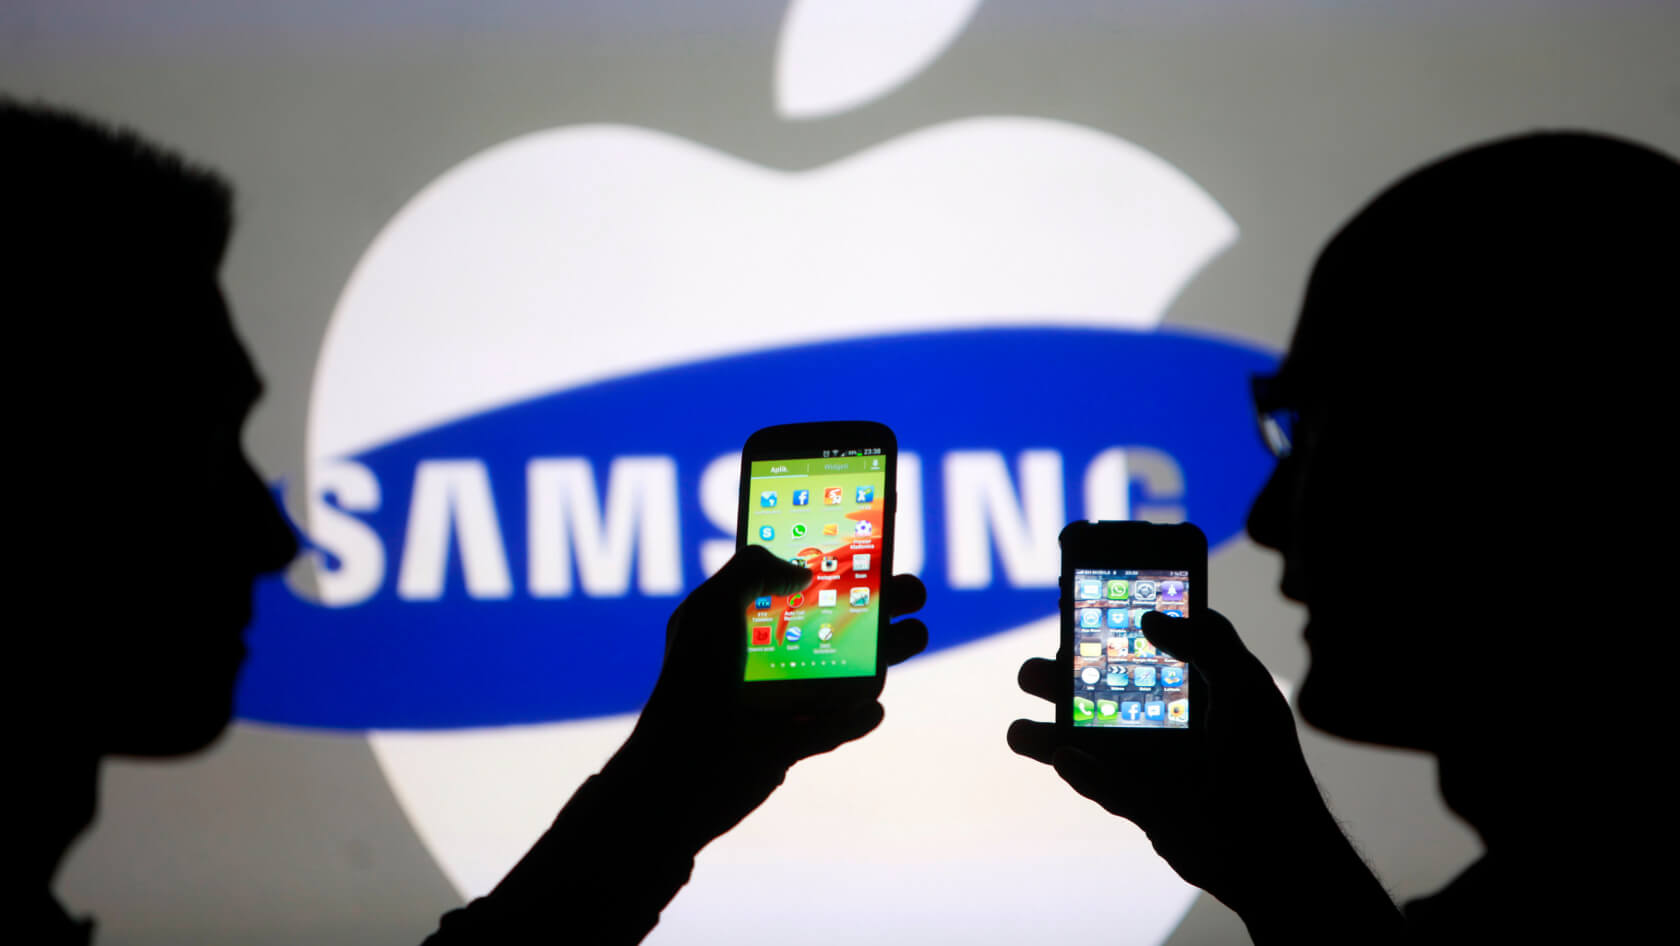 Samsung still world's biggest smartphone manufacturer; Chinese firms fight Apple for second place